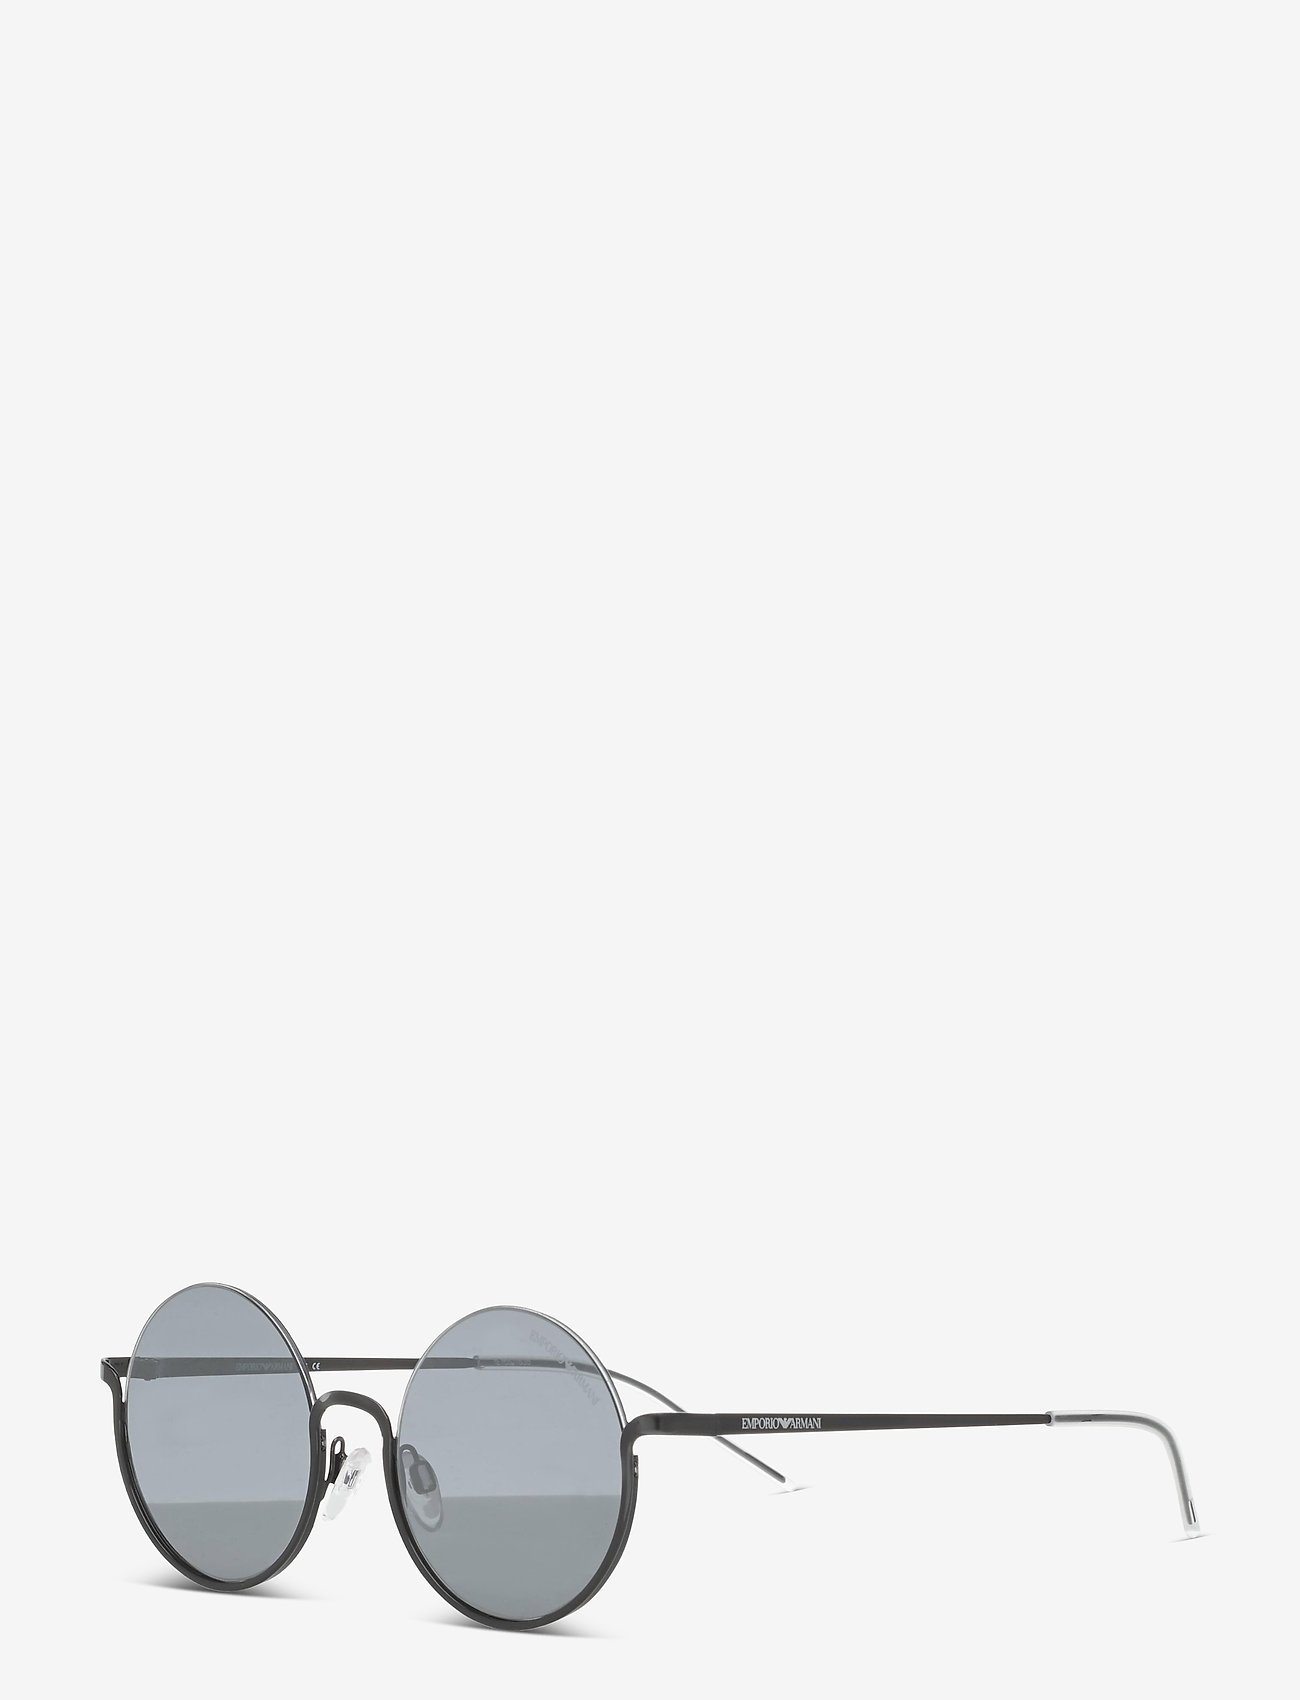 Emporio Armani Sunglasses - Sunglasses - rond model - mirror black - 1